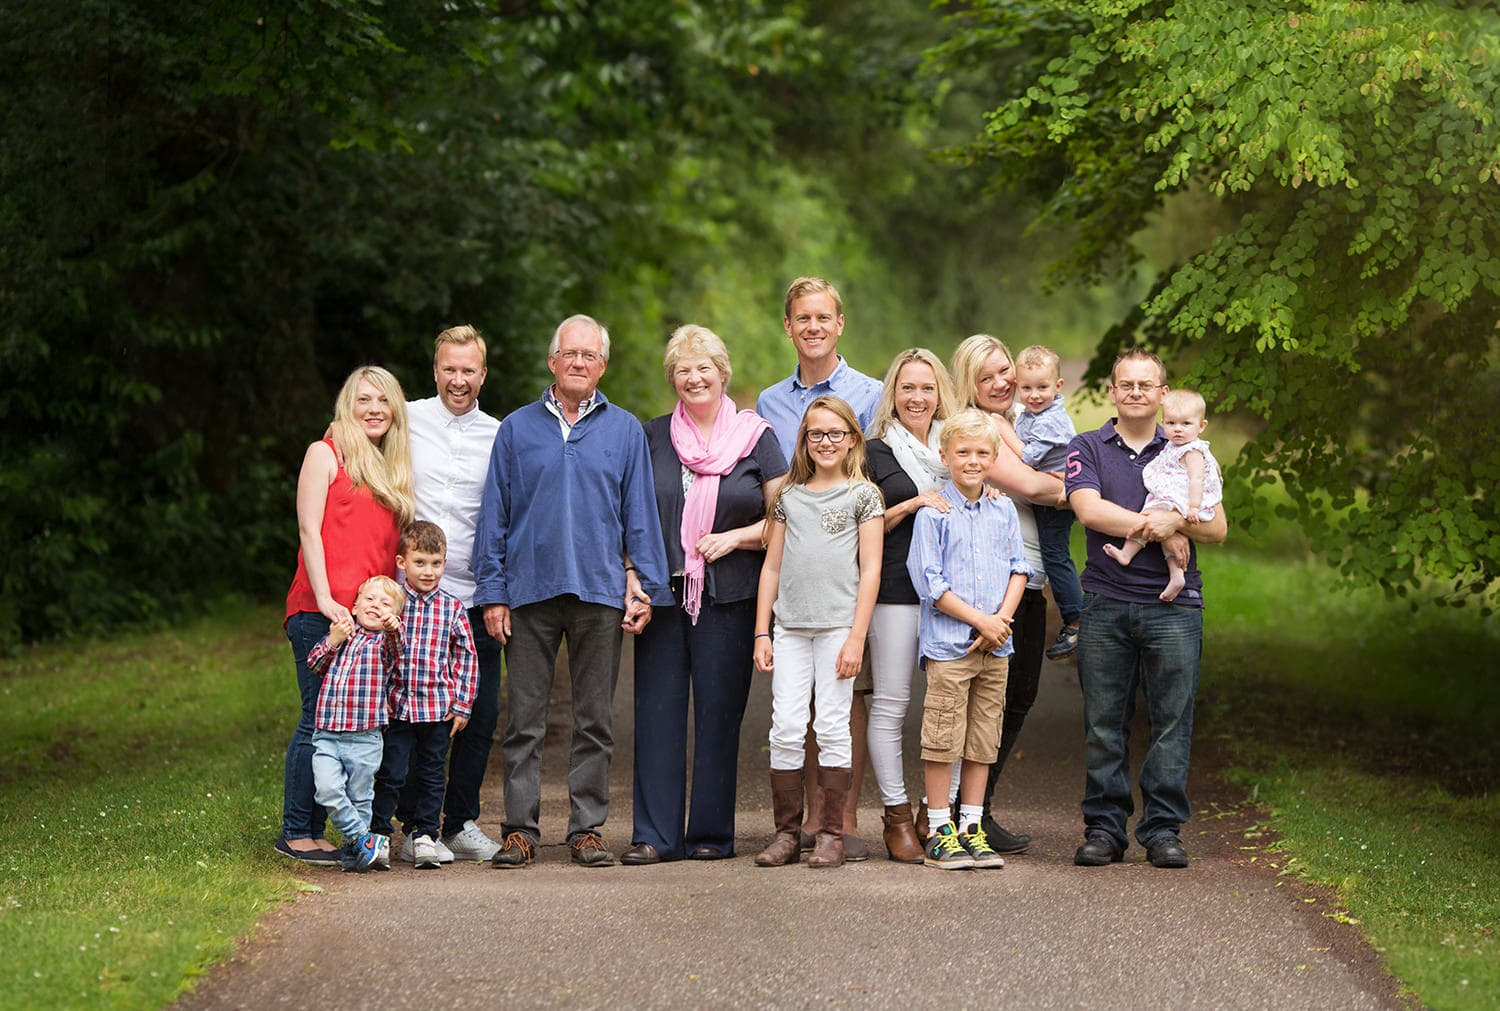 Extended family in photograph